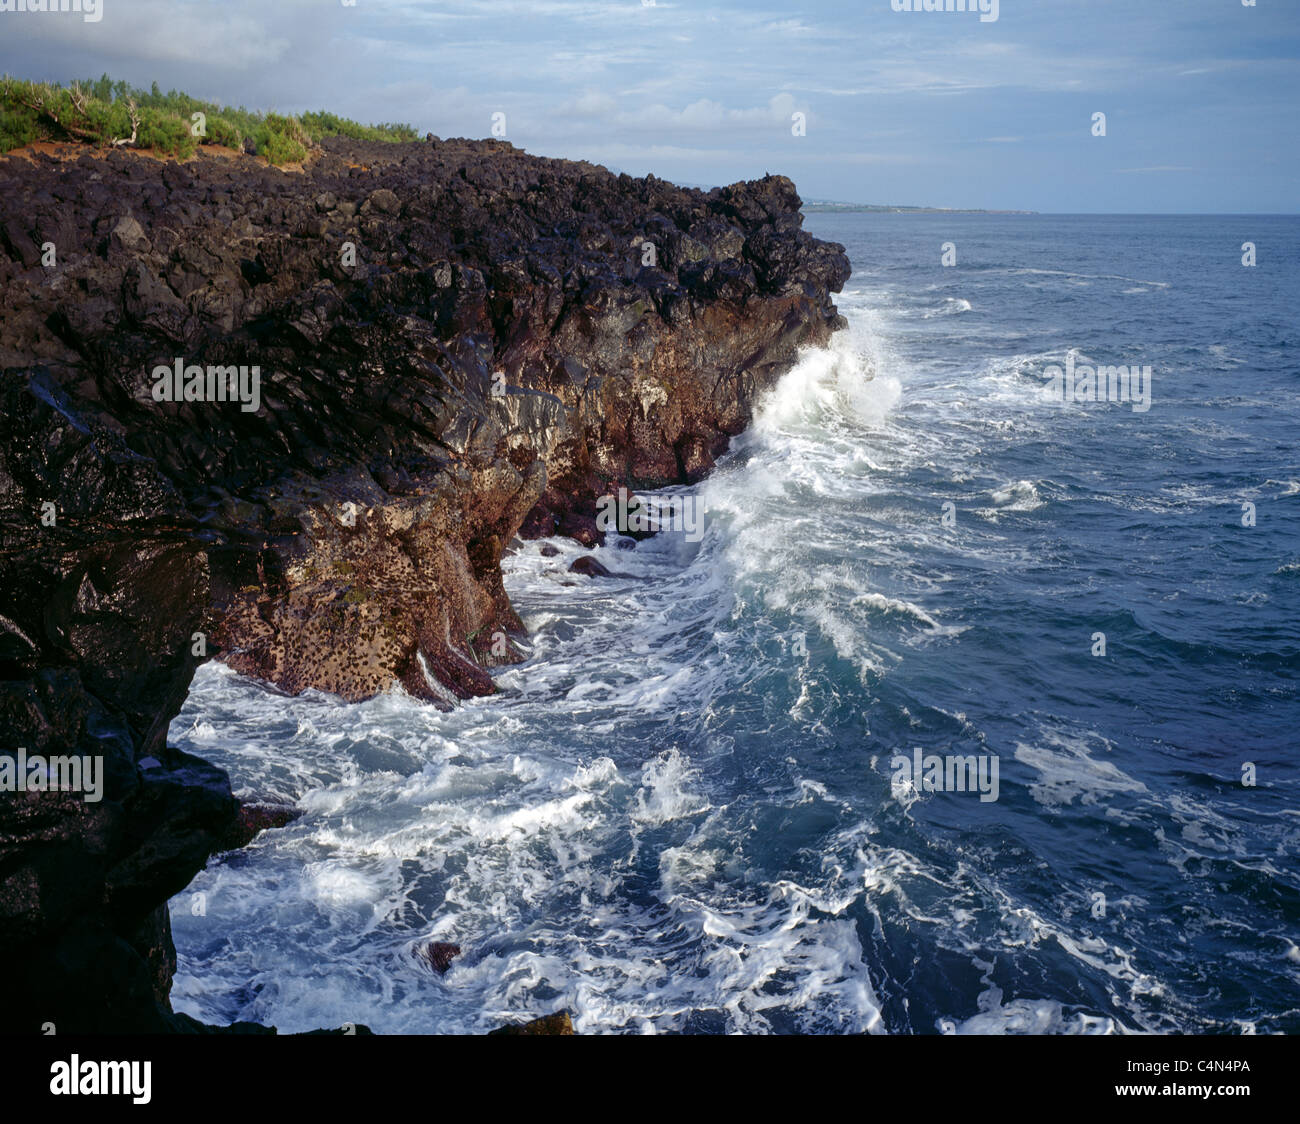 untamed waves of the Indian Ocean are breaking at the lava coast of the island La Reunion - Stock Image